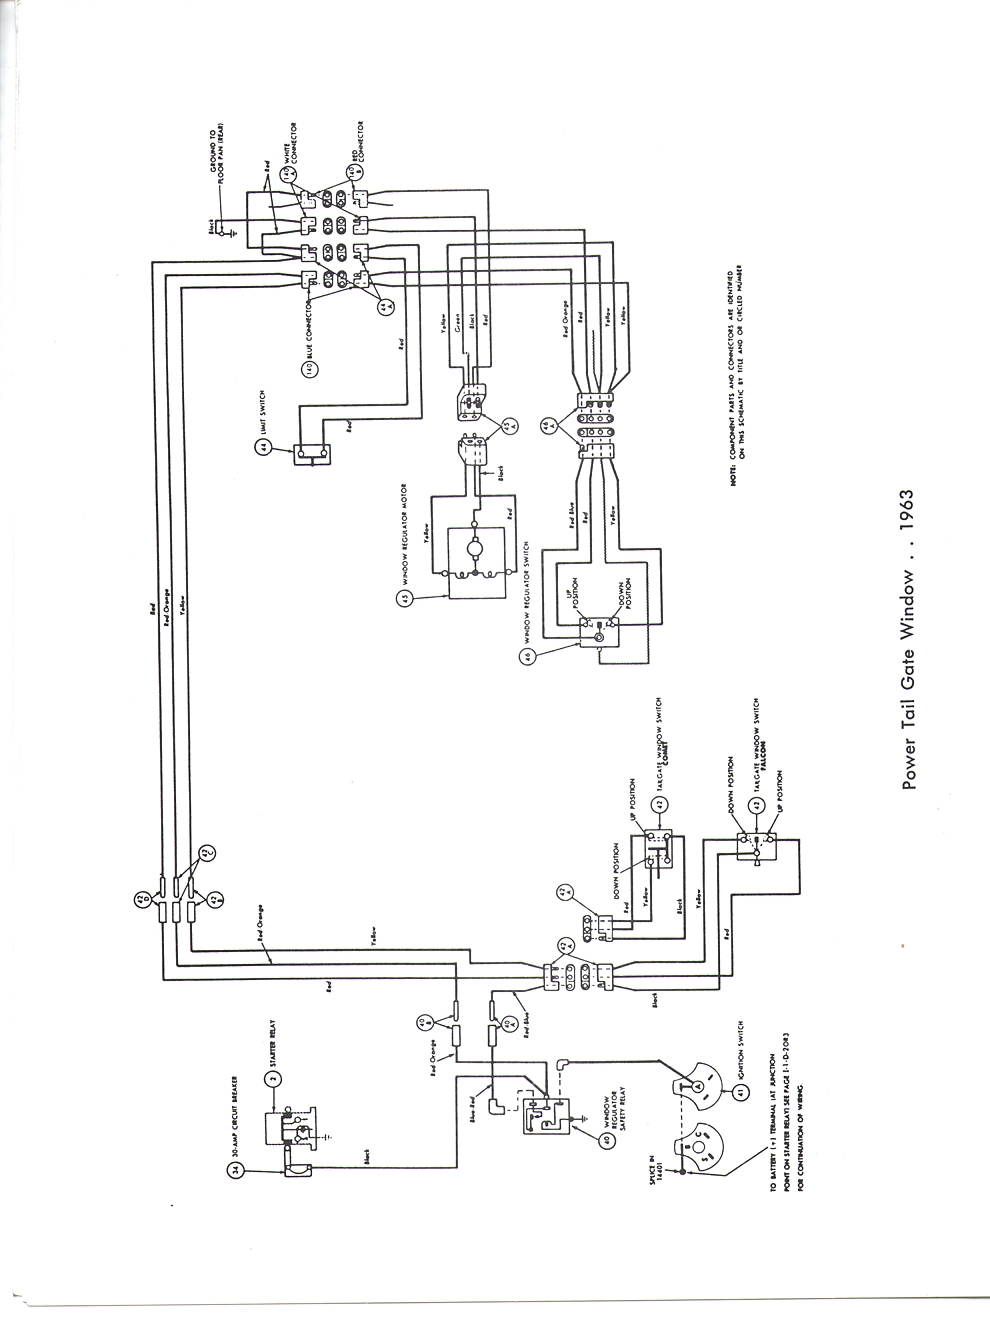 63 Falcon Wiring Diagram Lights Example Electrical Electric Blanket 24 Images For Sunbeam 1963 Ford